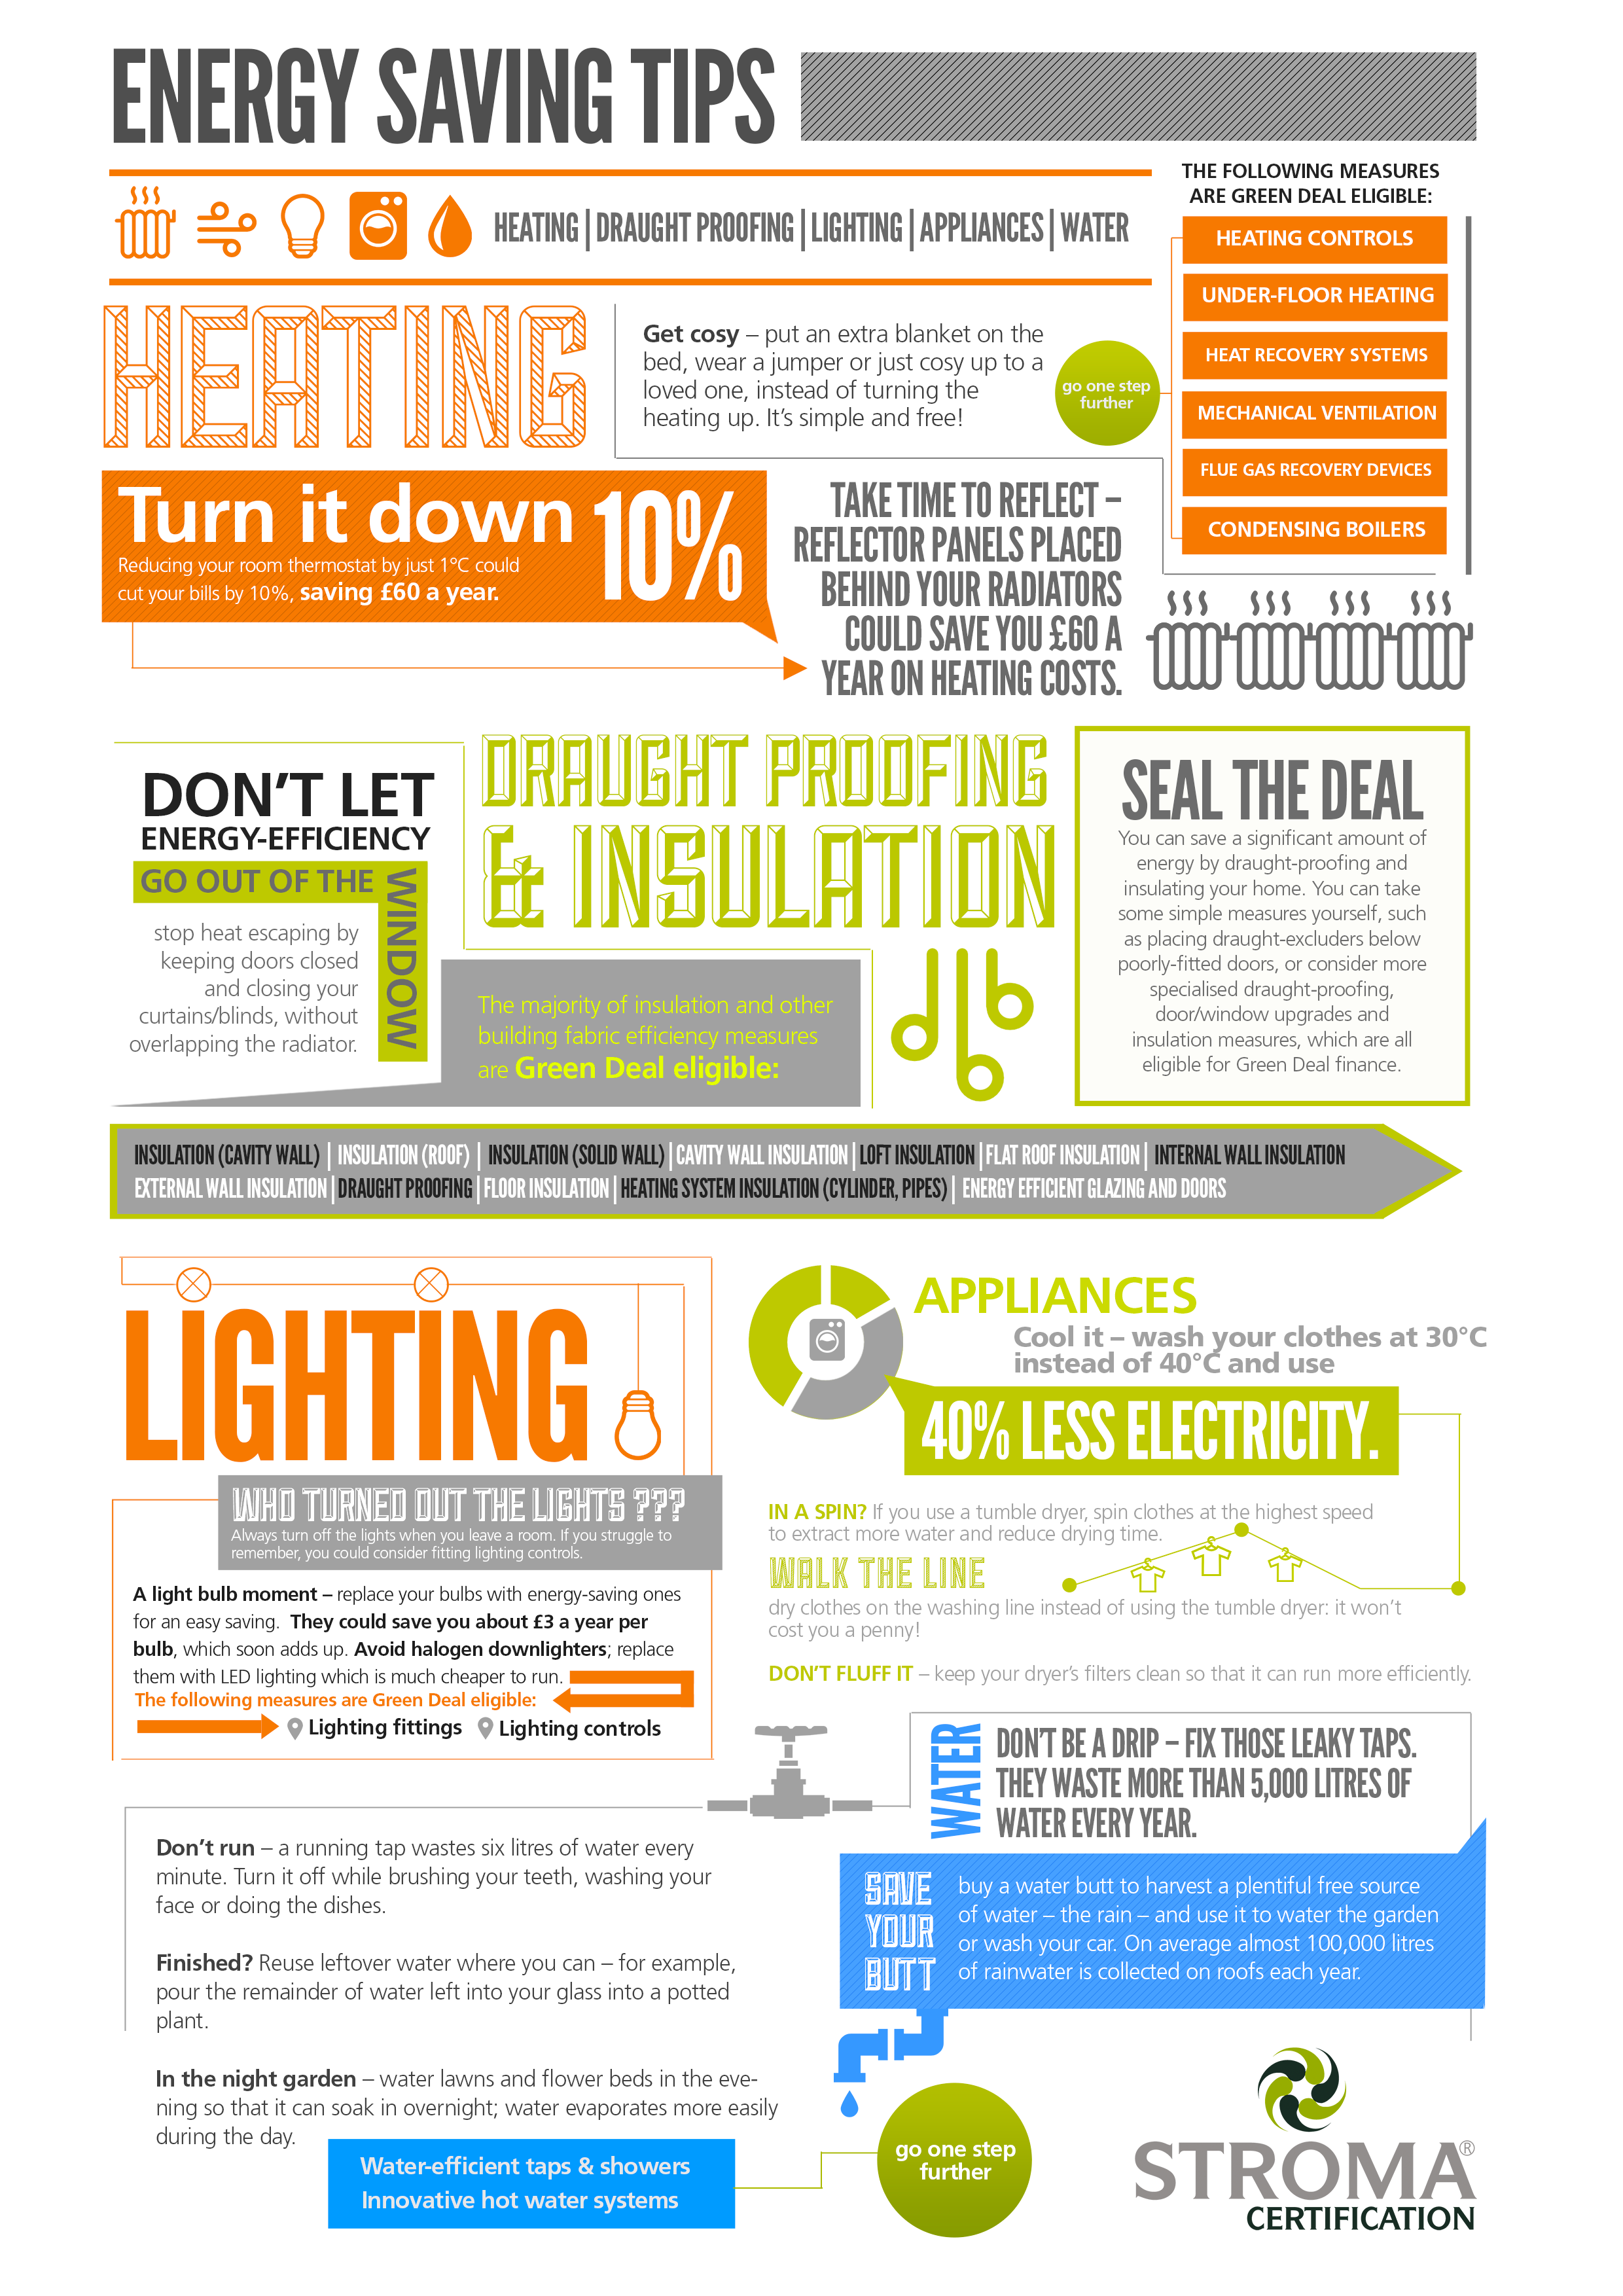 Space Heaters | Energy saving tips